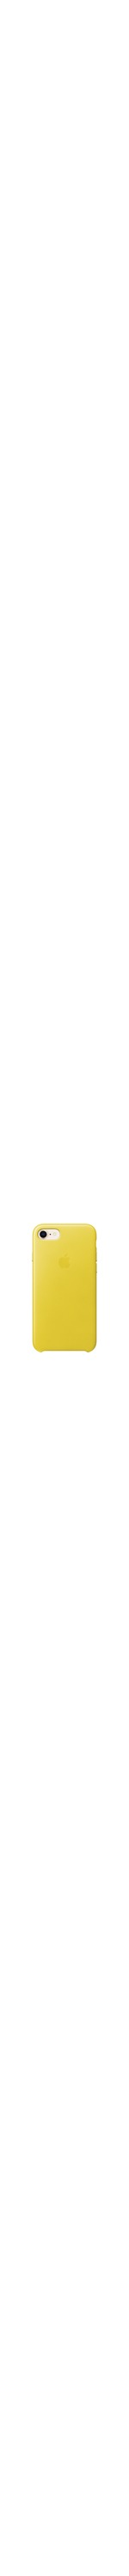 Apple Case for Apple iPhone 7, iPhone 8 Smartphone - Spring Yellow